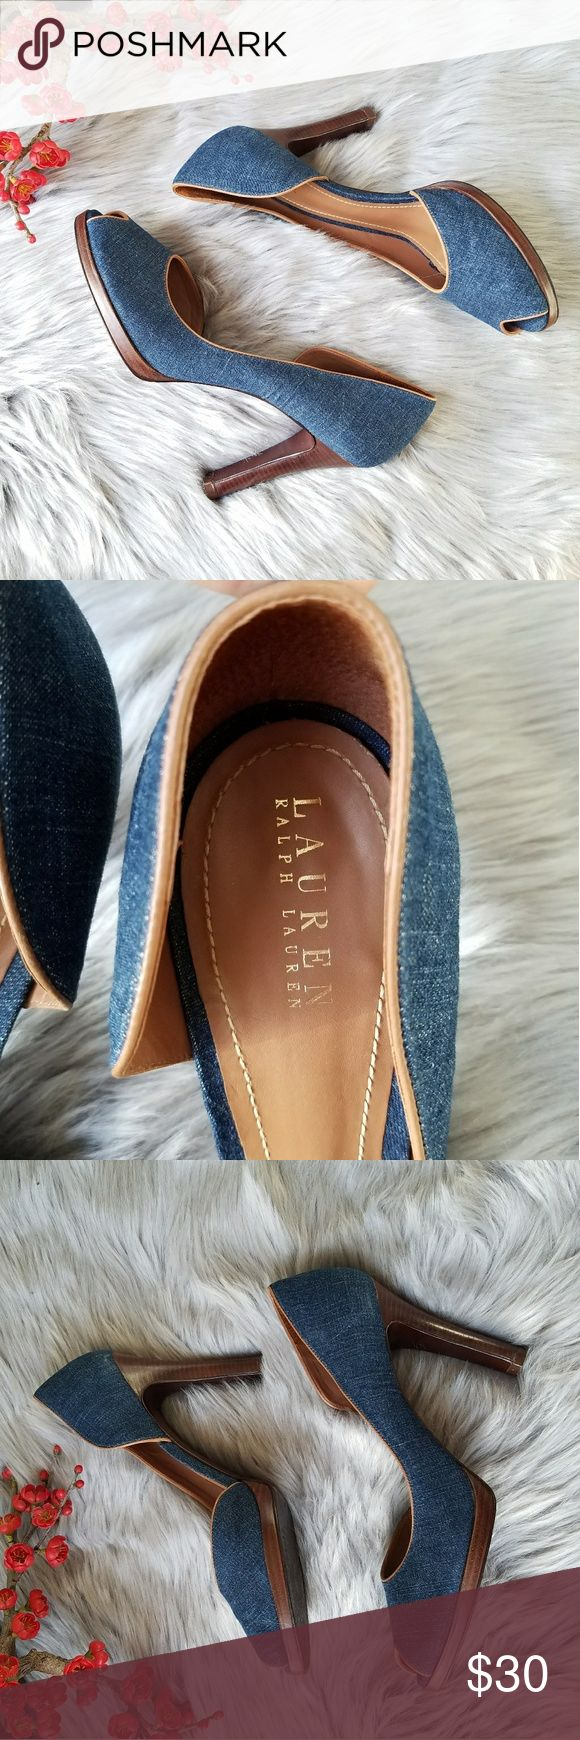 Ralph Lauren Peep Toe Denim Heels Ralph Lauren peep toe and open side denim heels. They are in perfect condition but they have been worn as the soles can show(see pictures). Other than the soles the shoes are in neat condition! Ralph Lauren Shoes Heels